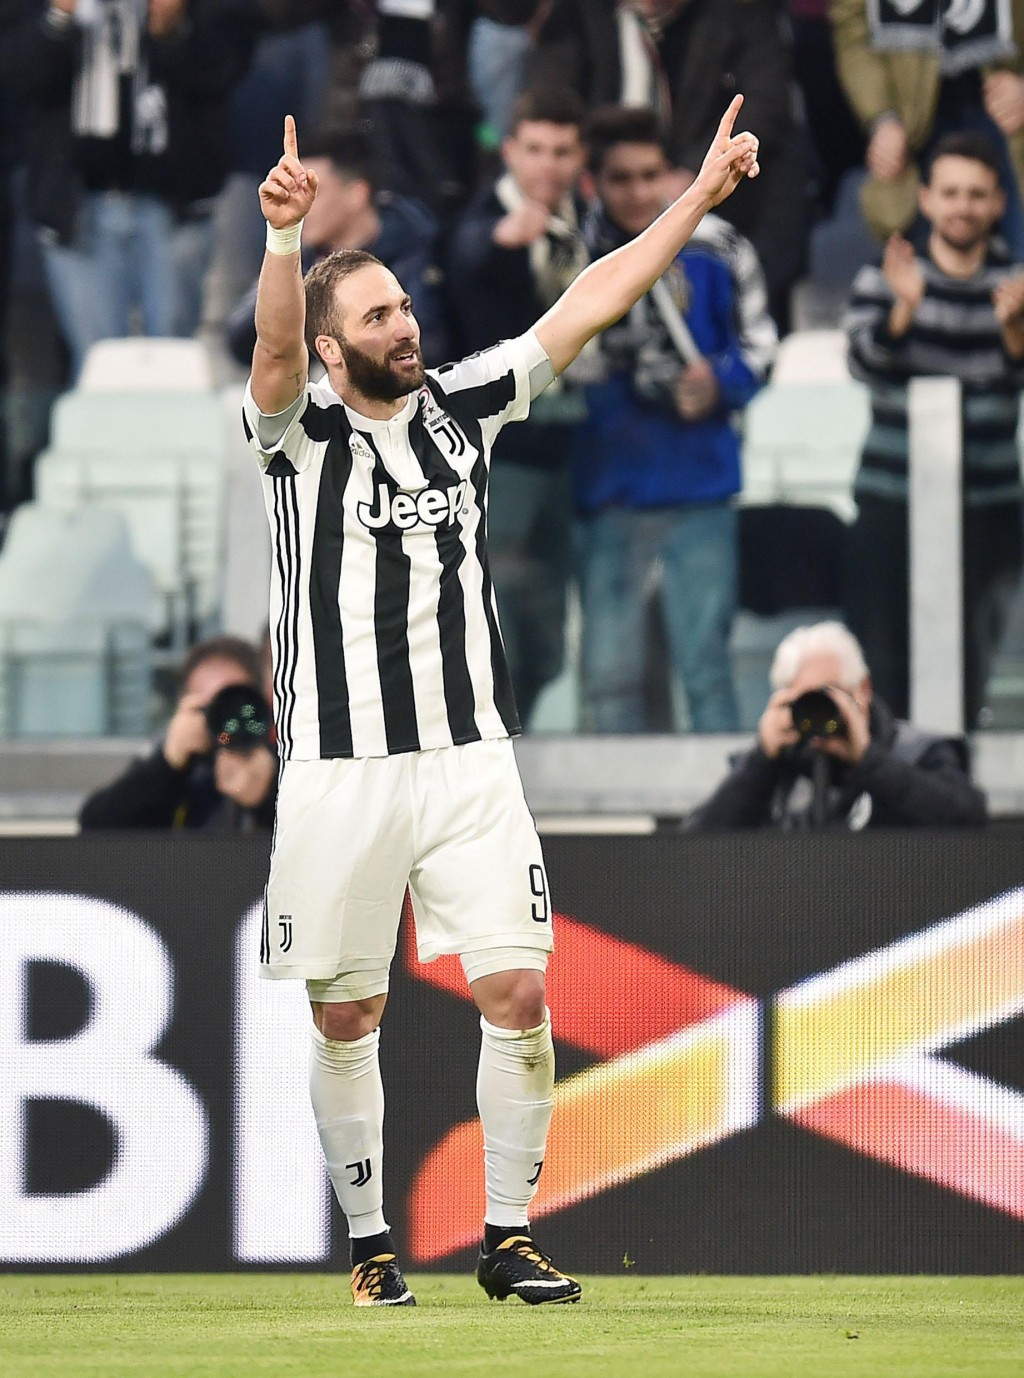 Juventus' Gonzalo Higuain celebrates after scoring his side's first goal during the Italian Serie A soccer match between Juventus and Atalanta at the